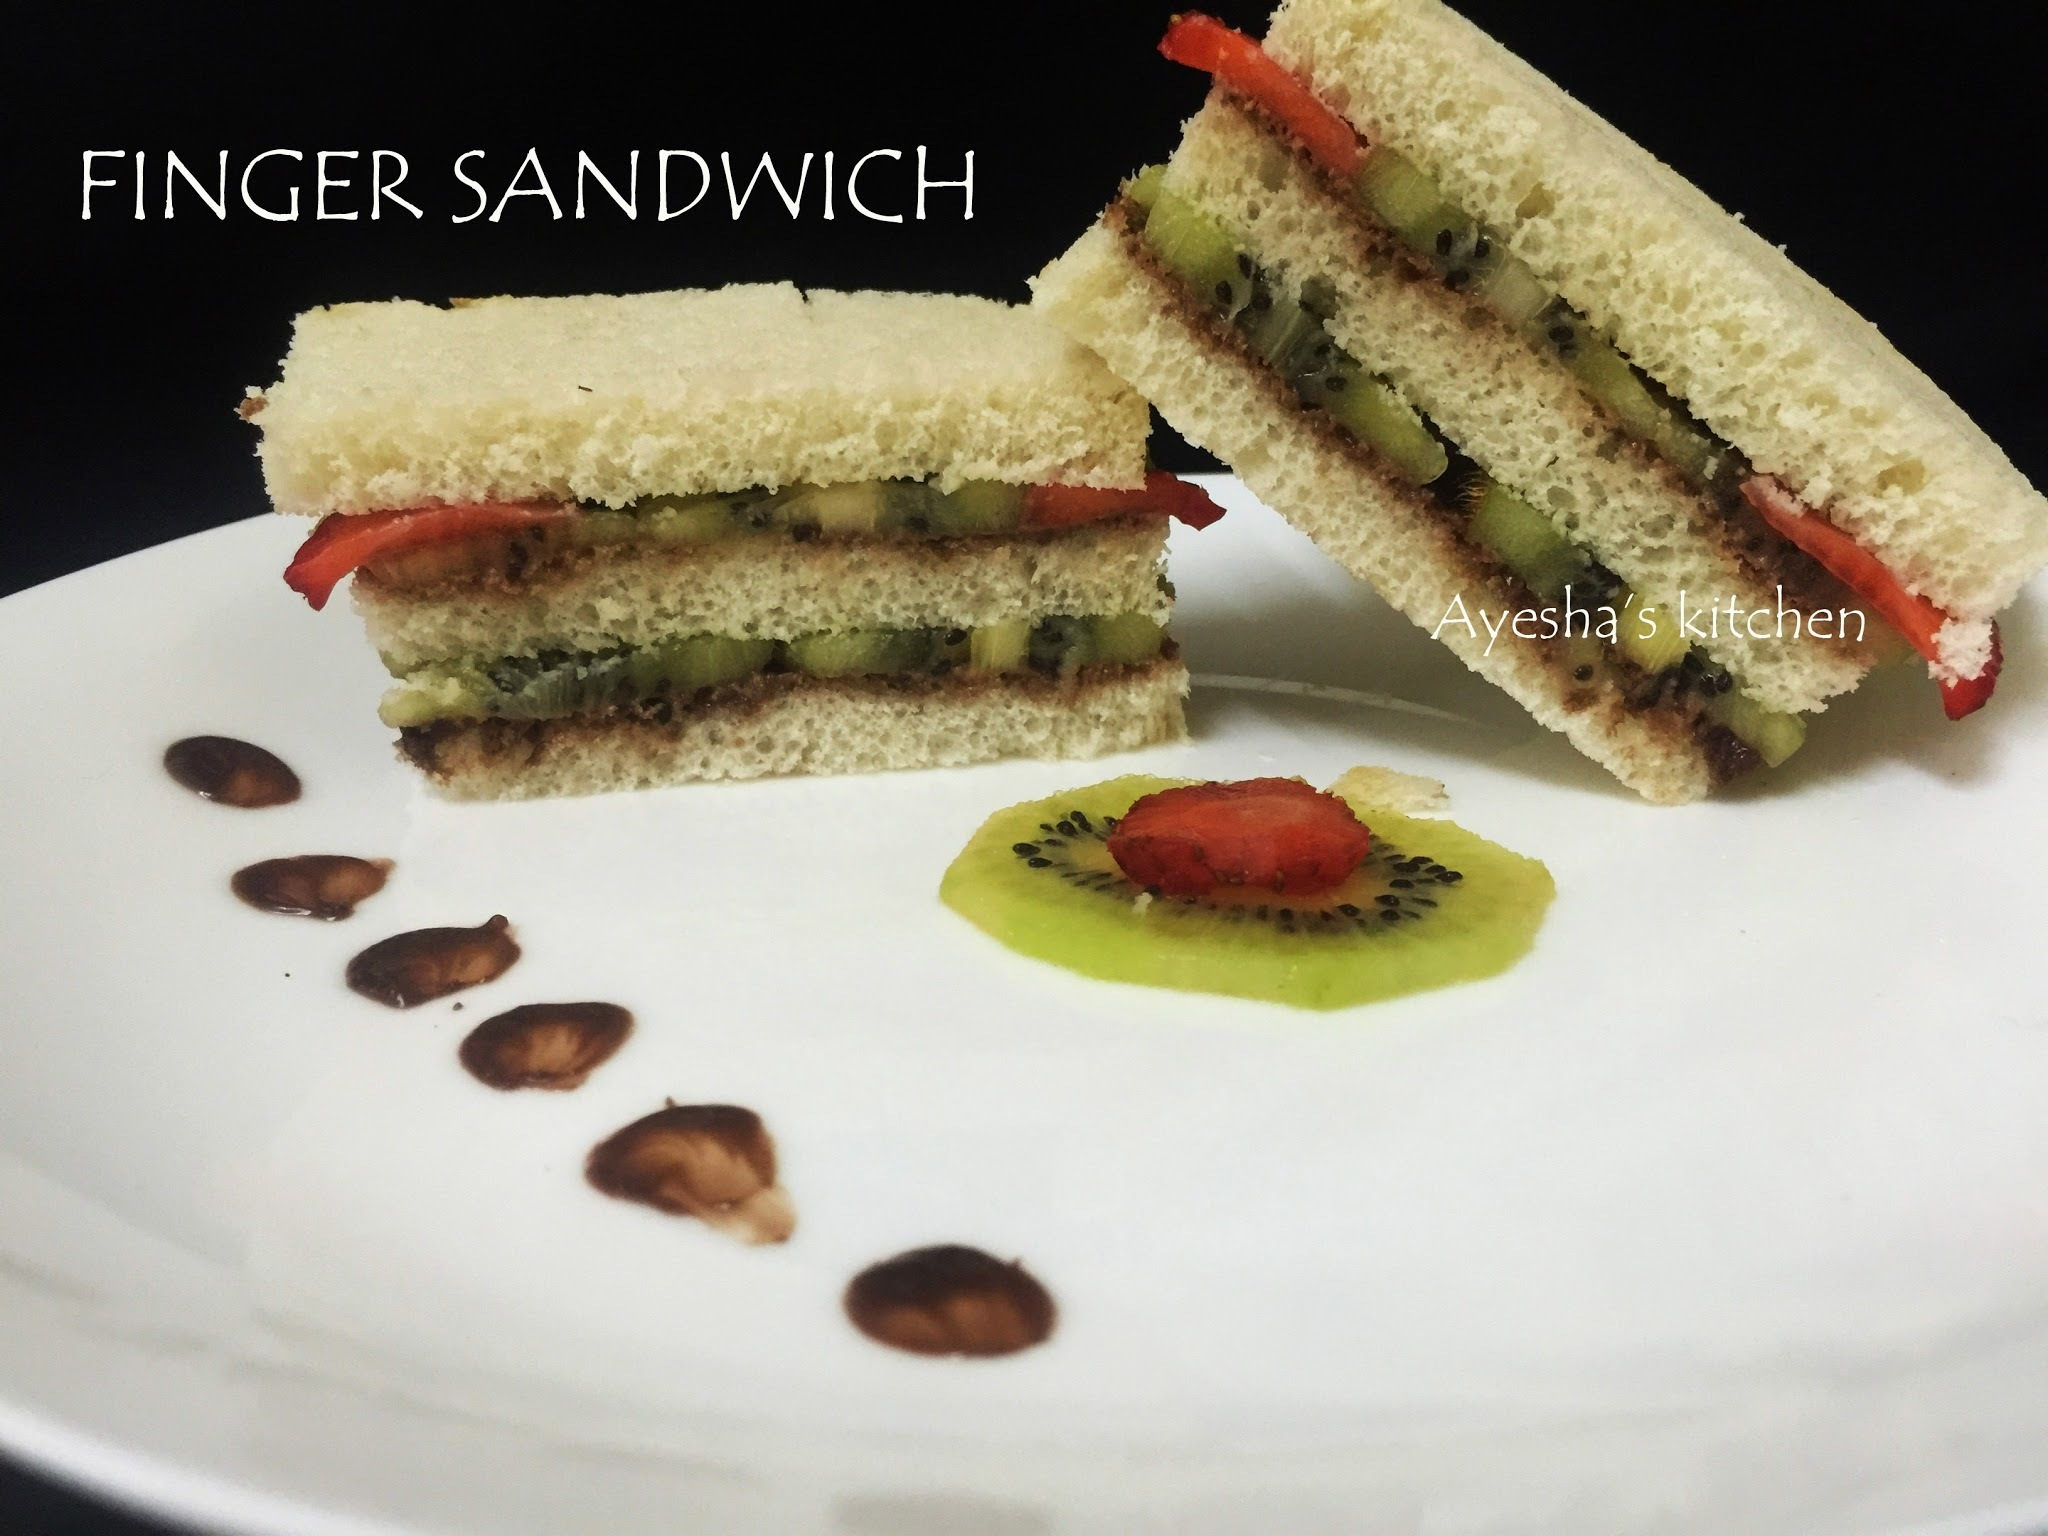 TEA SANDWICH RECIPE / SWEET FINGER SANDWICH RECIPE / KIDS SNACK